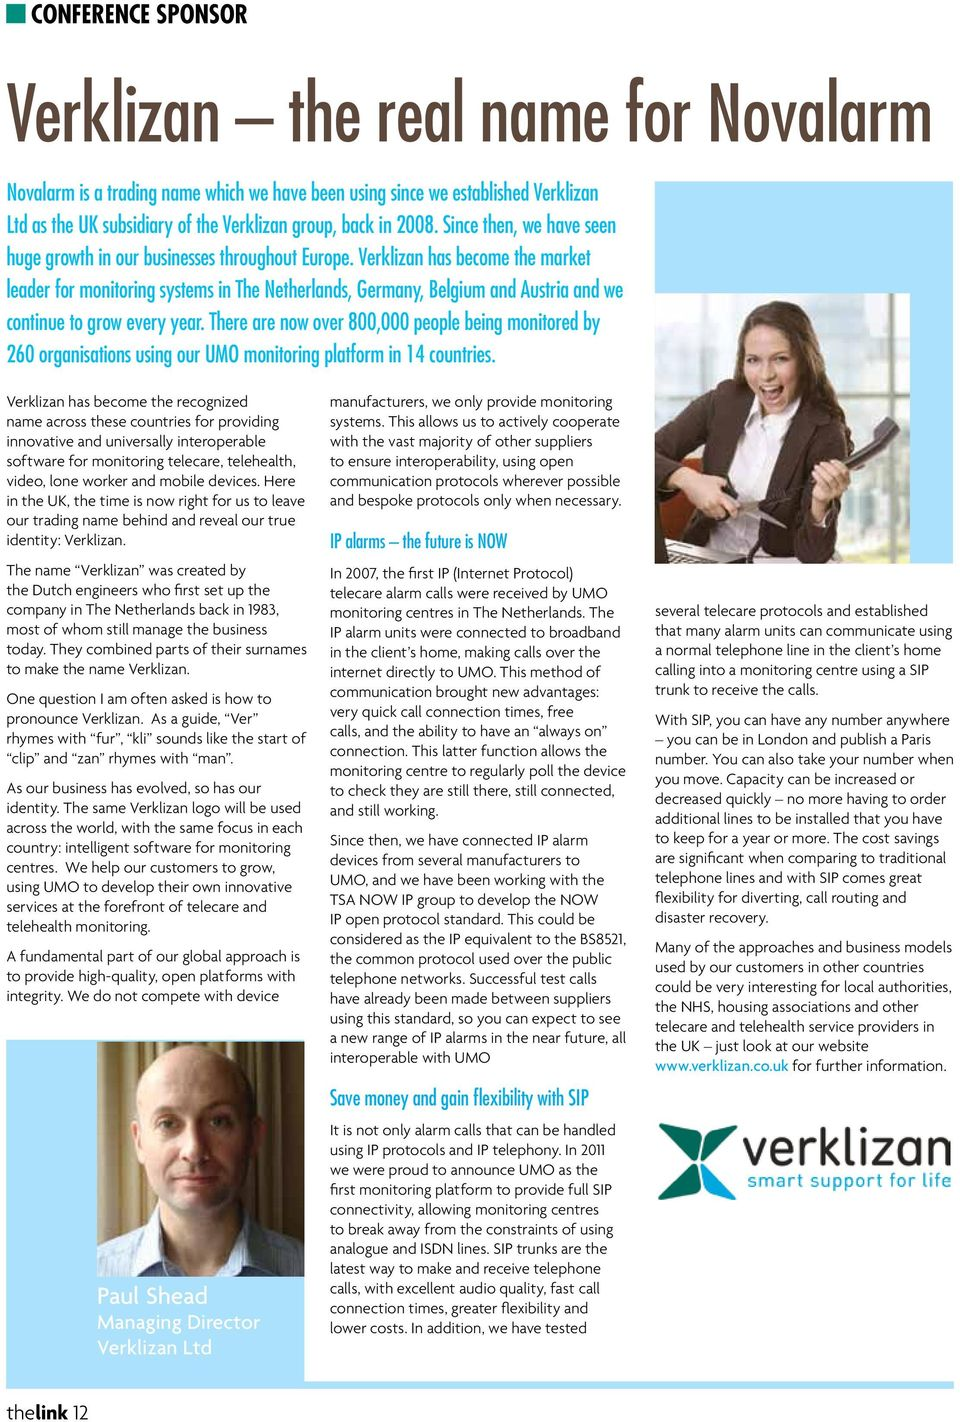 Verklizan has become the market leader for monitoring systems in The Netherlands, Germany, Belgium and Austria and we continue to grow every year.